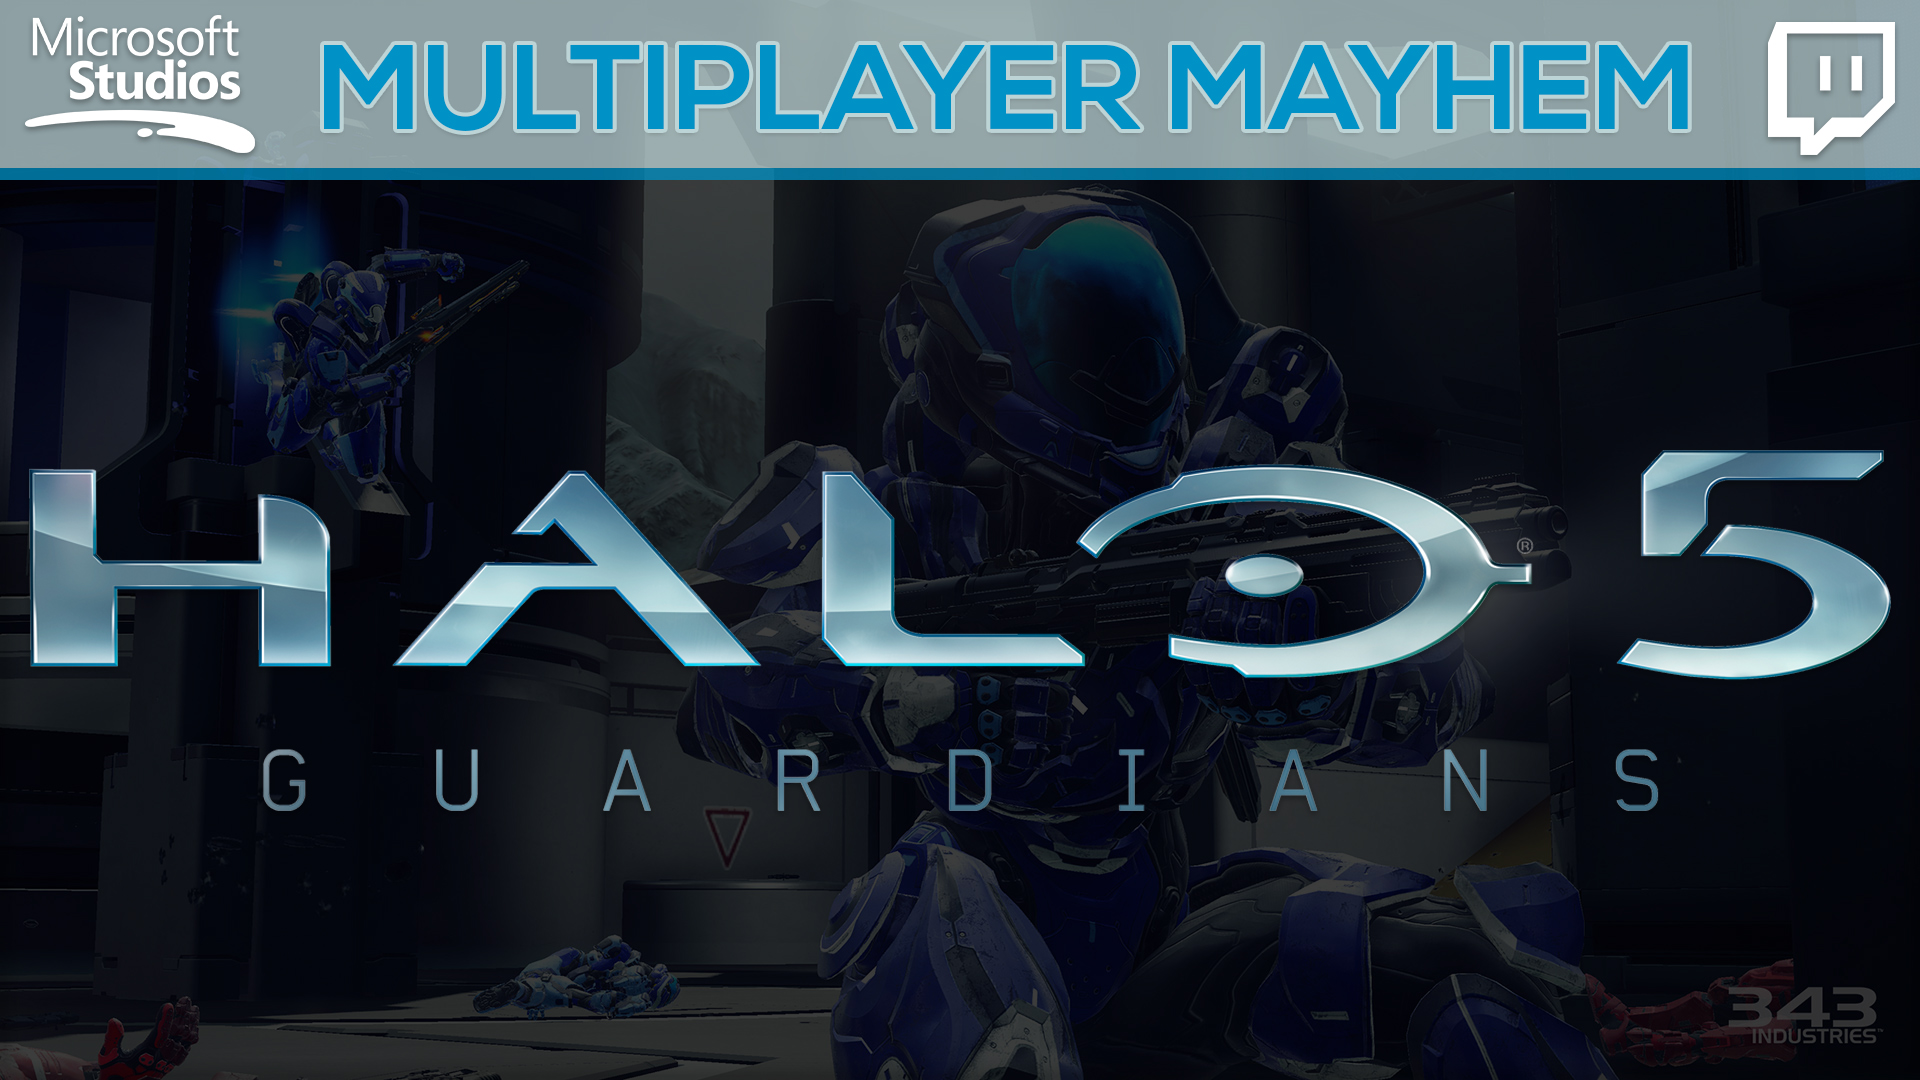 mult mayhem - halo 5 - featured image - 5-28